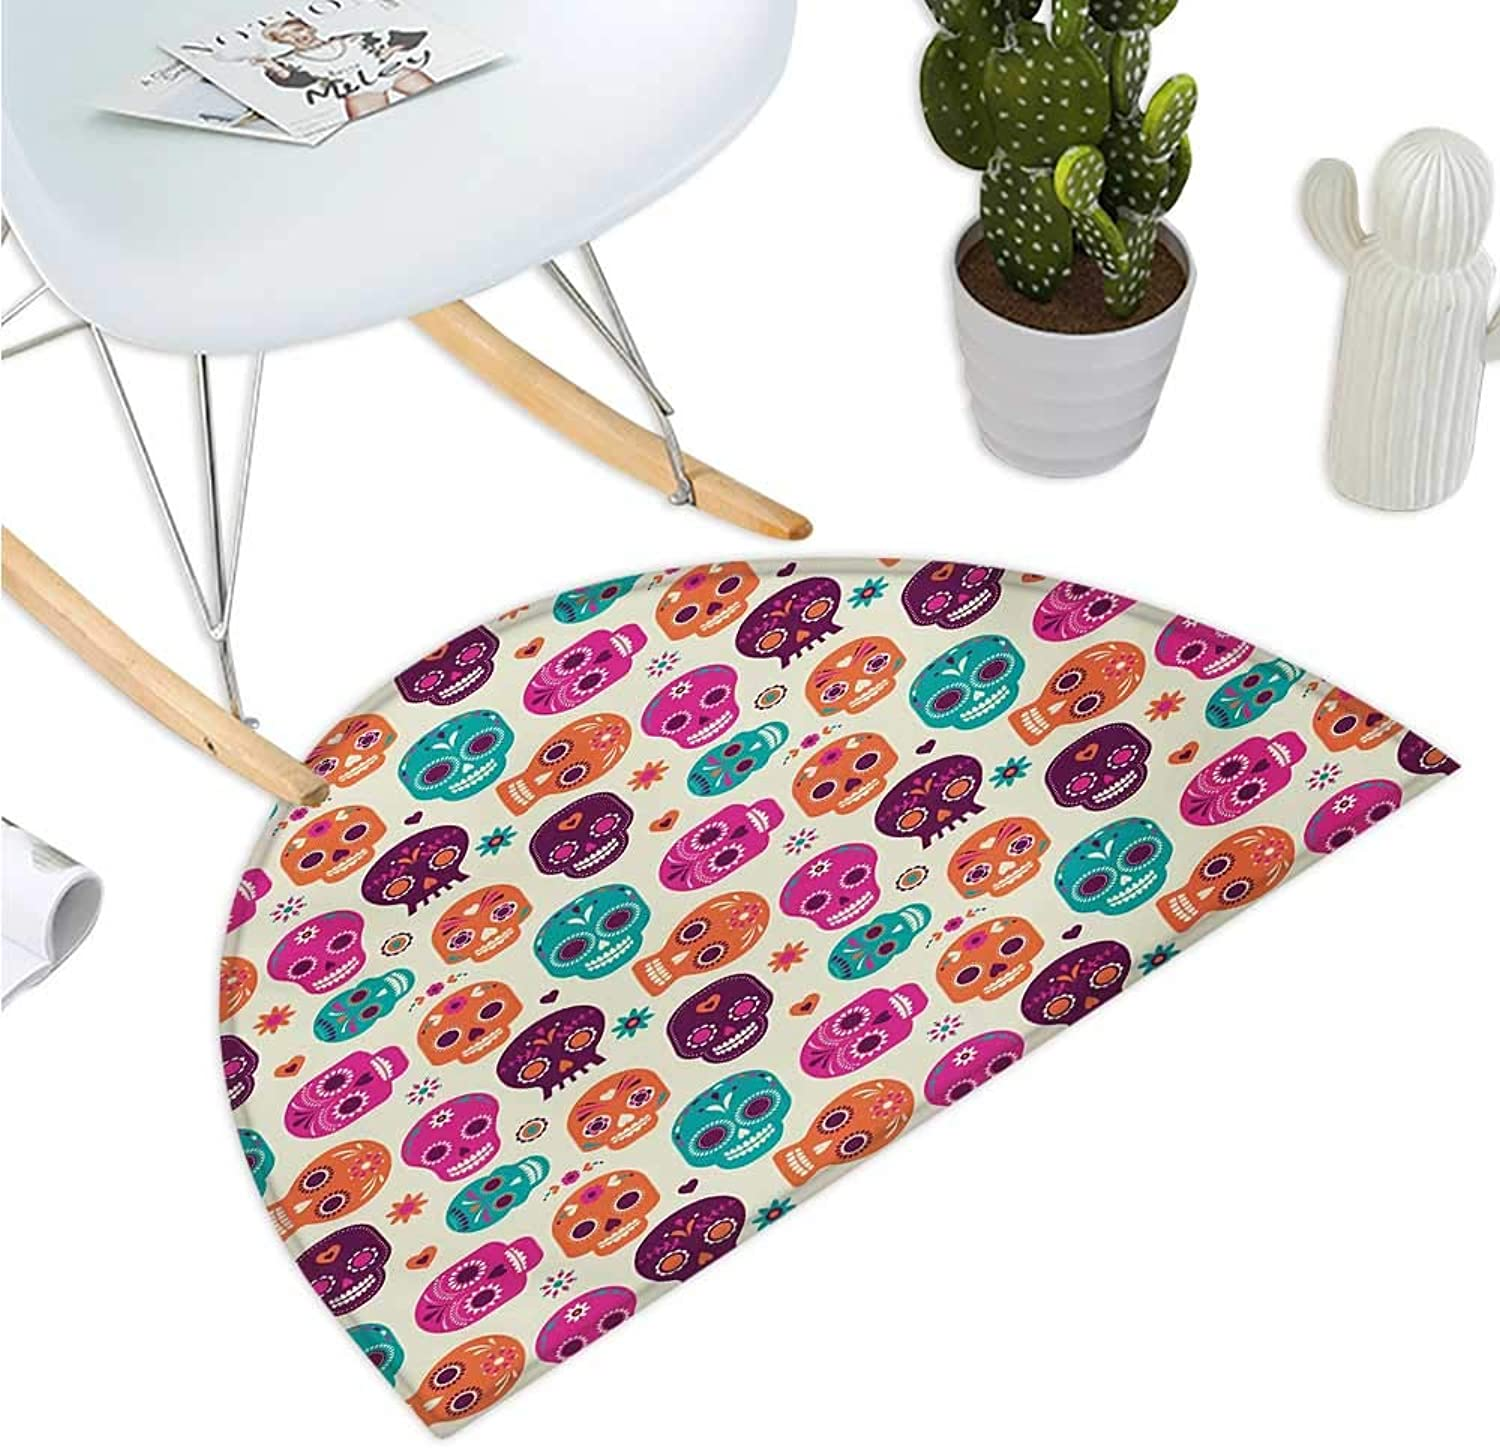 Sugar Skull Semicircular Cushion Cute colorful Skull Silhouettes Hearts and Flowers Carnival Celebration Theme Halfmoon doormats H 35.4  xD 53.1  Multicolor